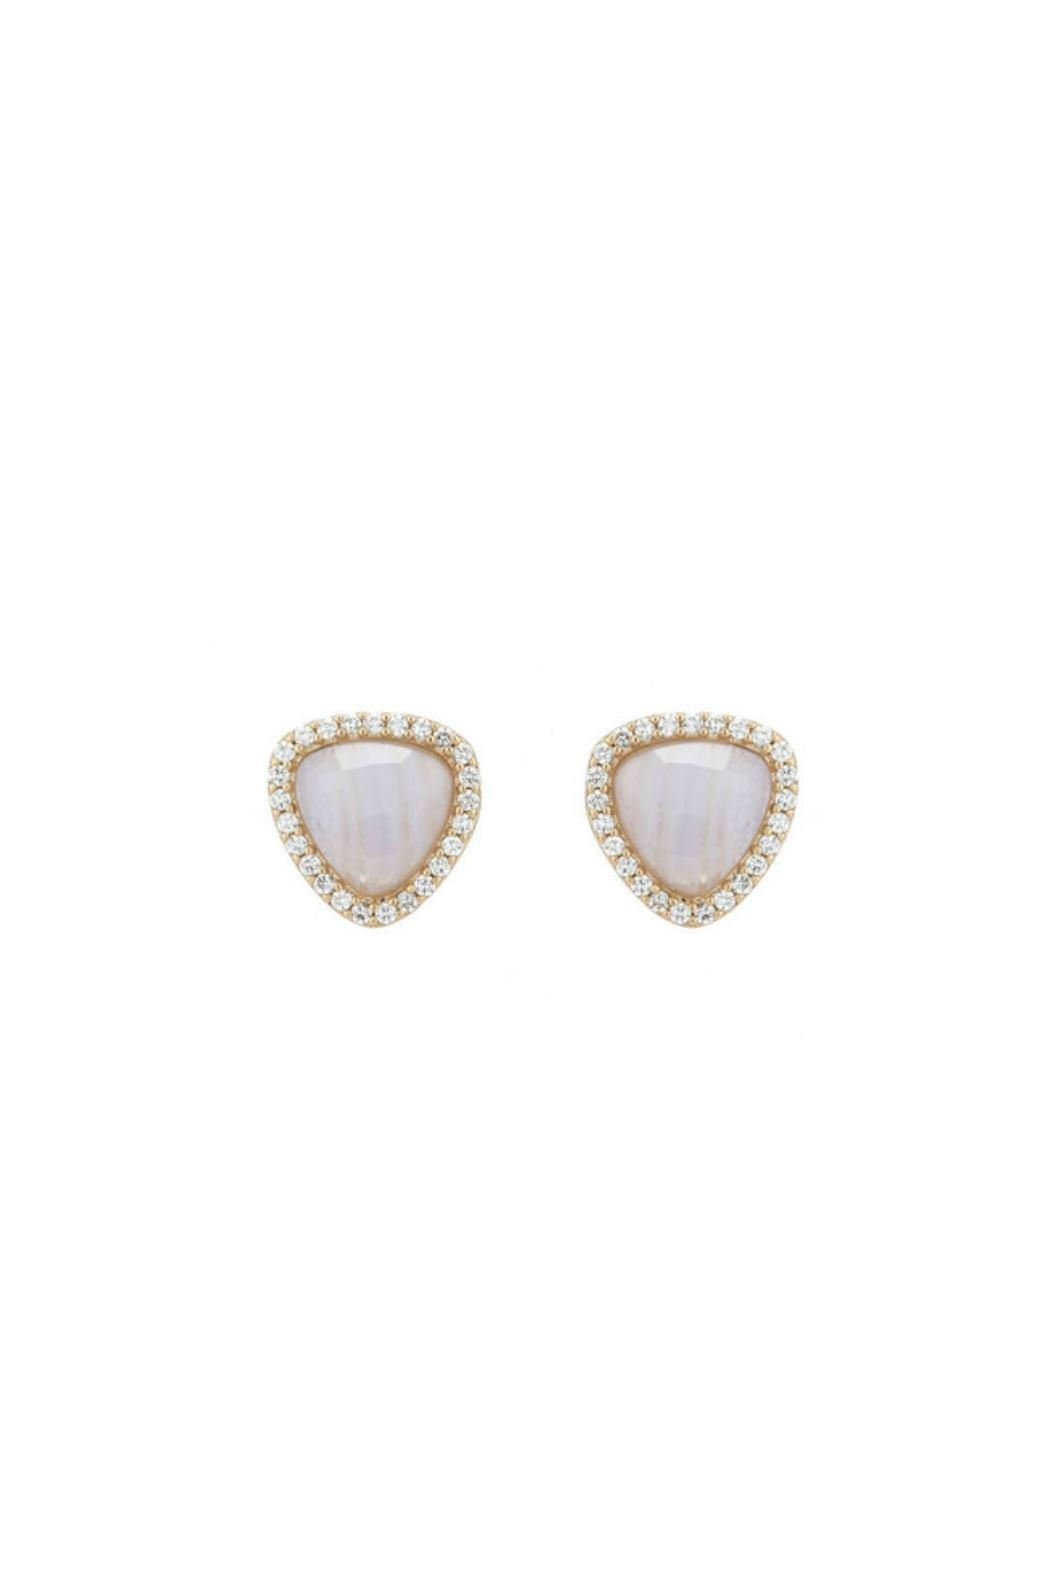 Gemma Collection Pave Agate Earrings - Main Image